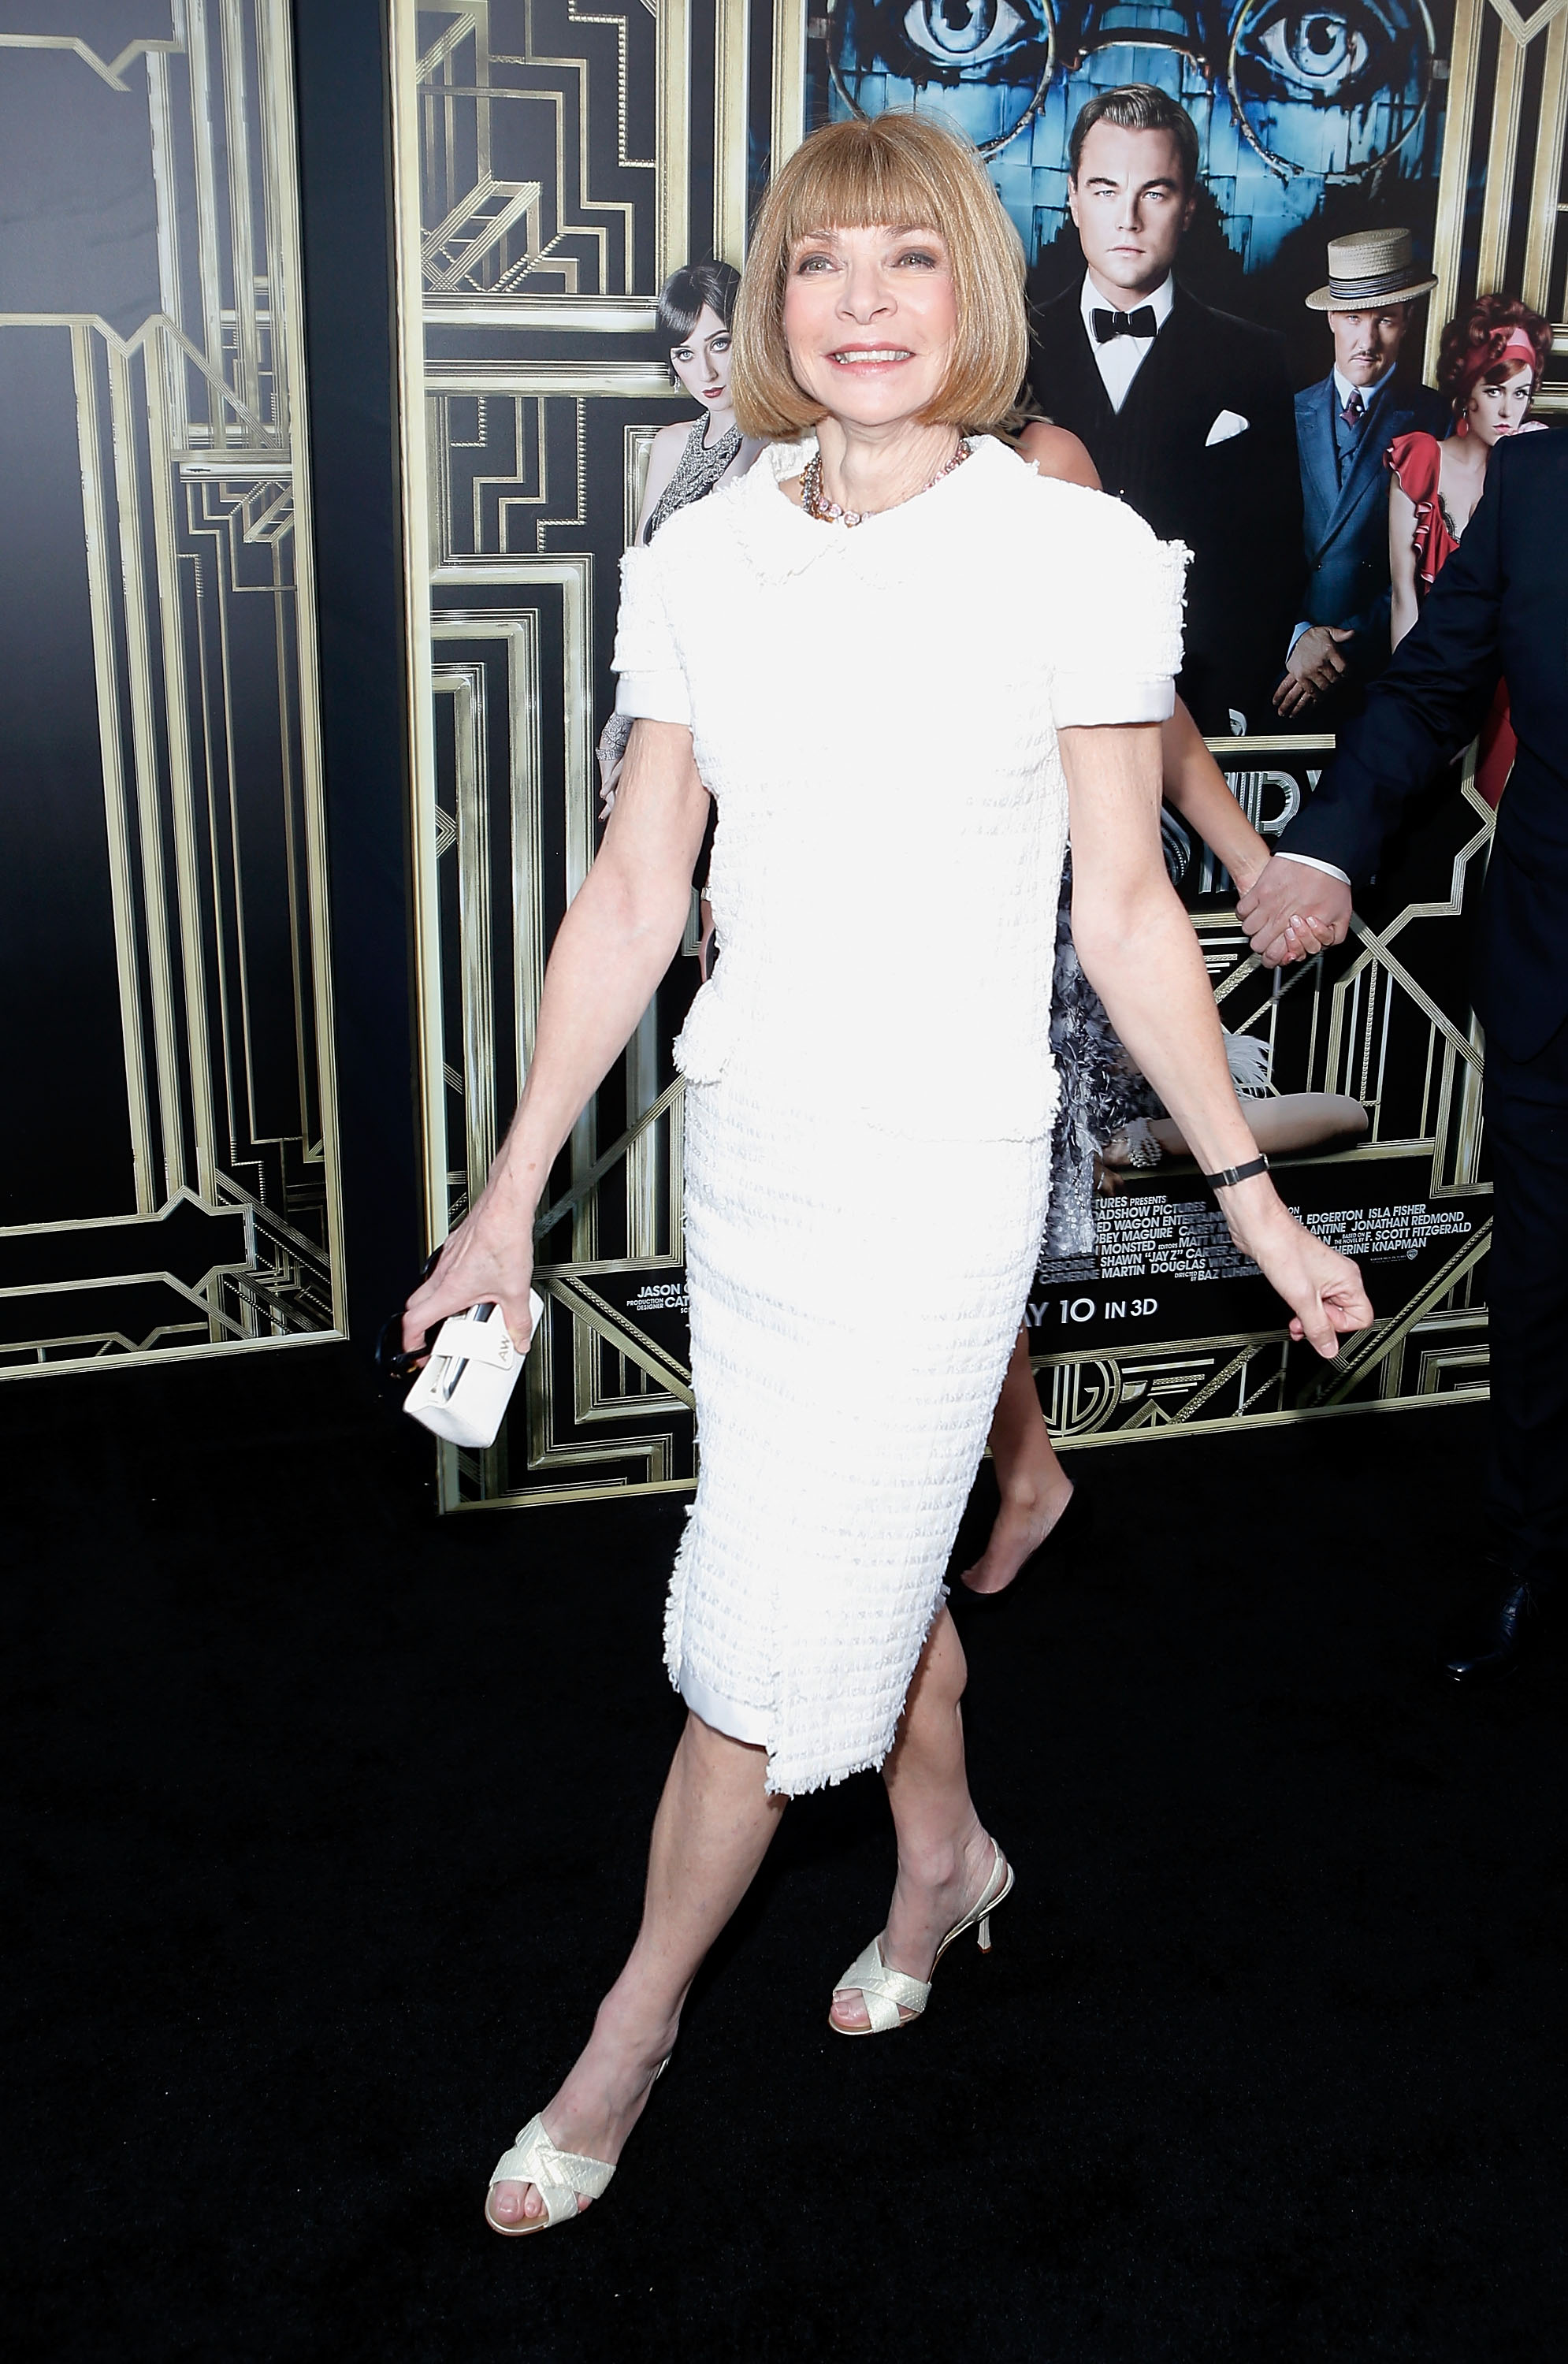 Zoe Saldana, Anna Wintour, Isla Fisher and Amber Tamblyn are this week's worst dressed celebs